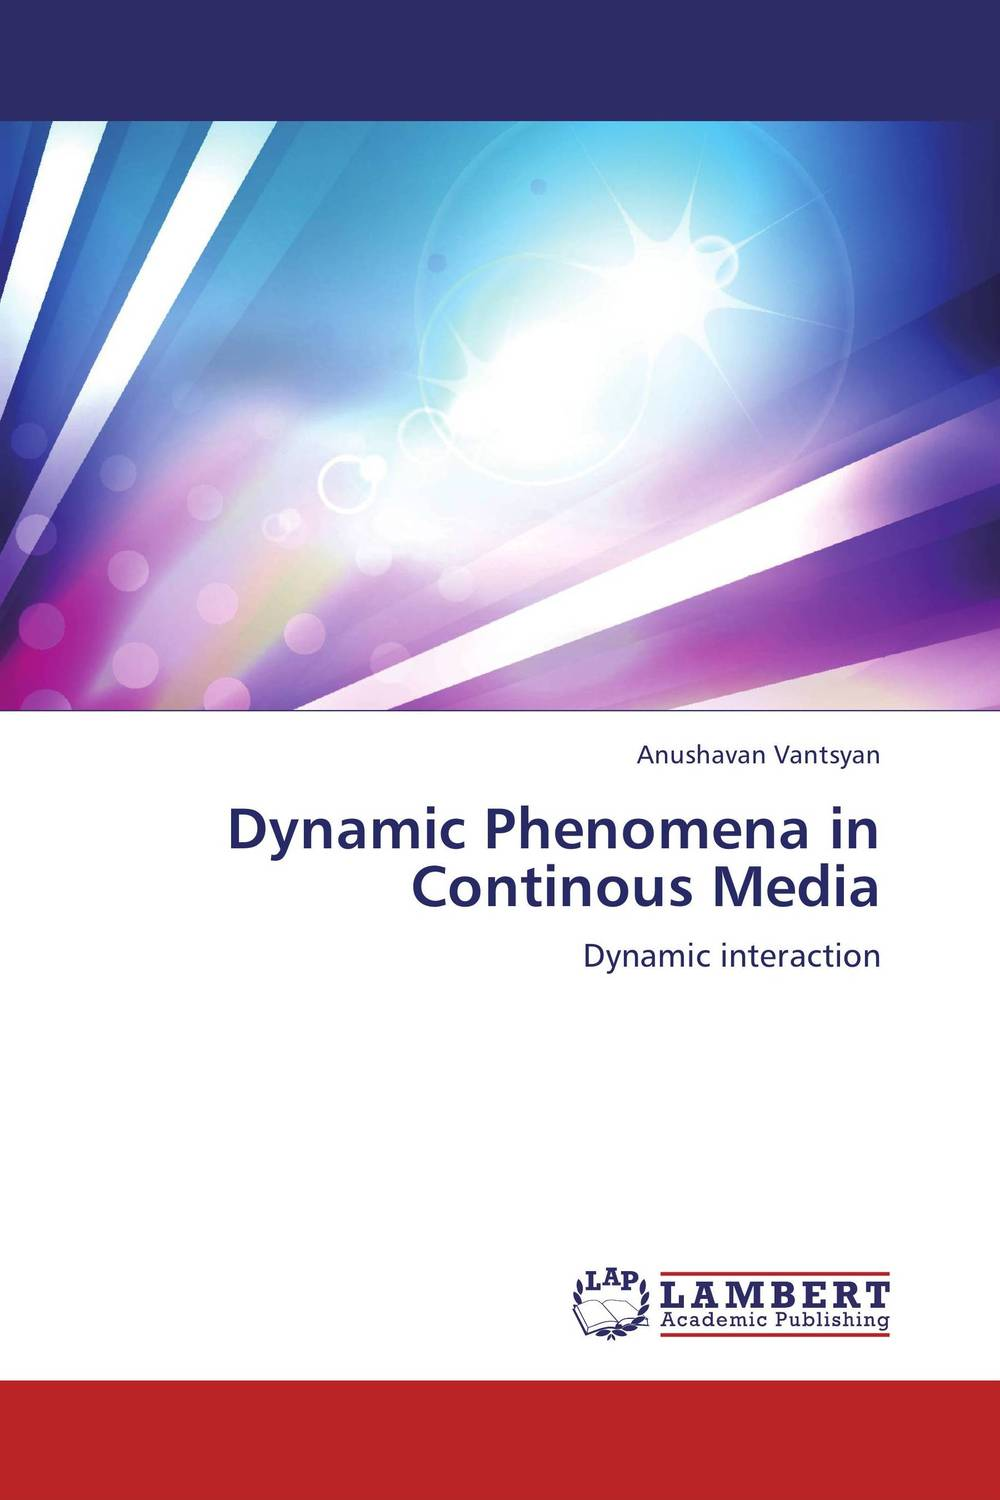 Dynamic Phenomena in Continous Media